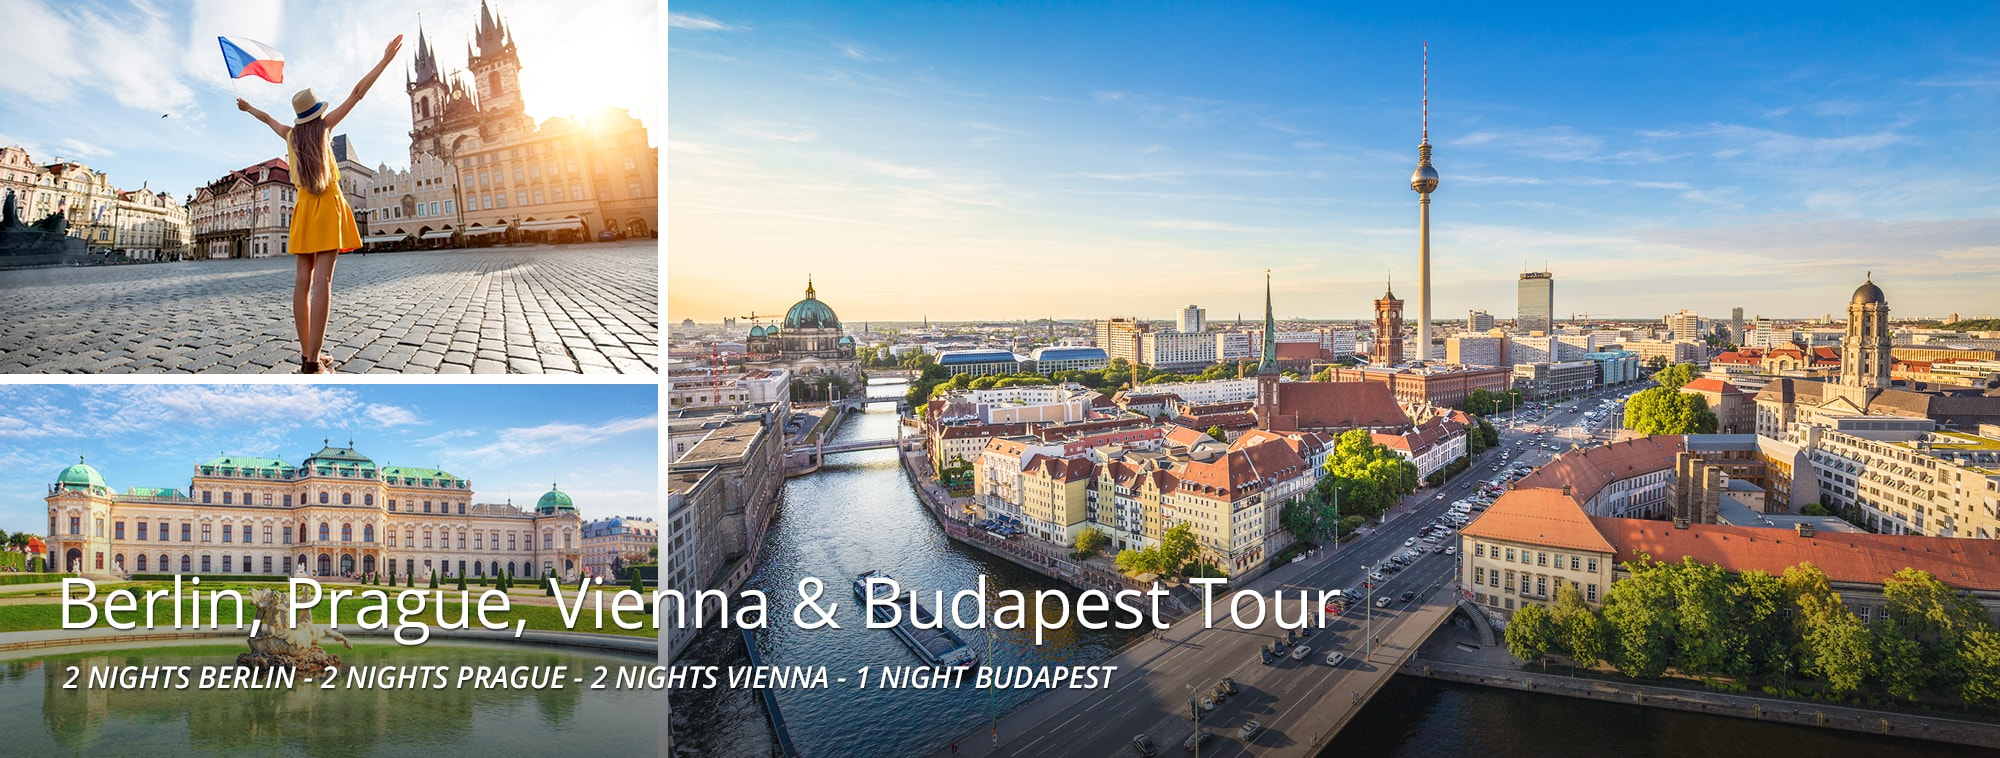 Berlin, Prague, Vienna & Budapest Tour Top Banner